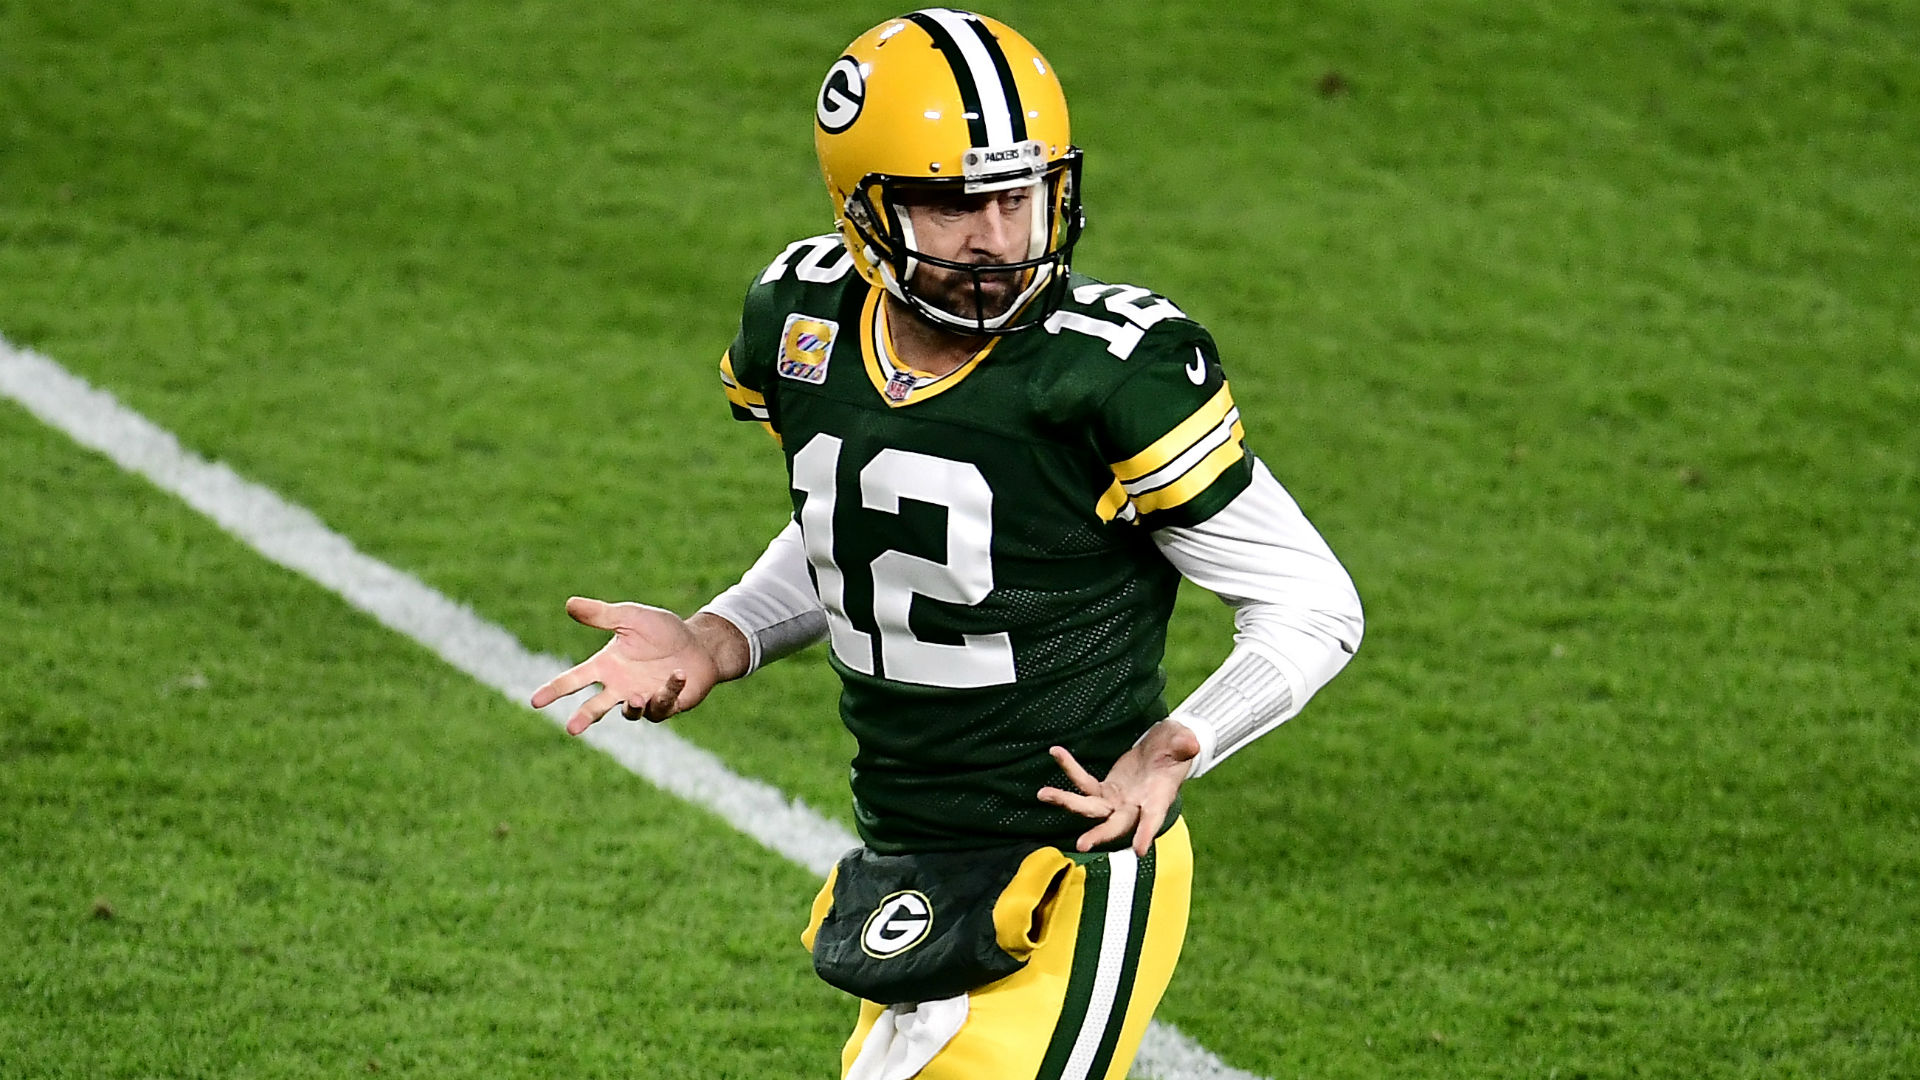 NFL picks, predictions for Week 9: Packers rebound vs. 49ers; Colts stay hot; Tua leads Dolphins upset